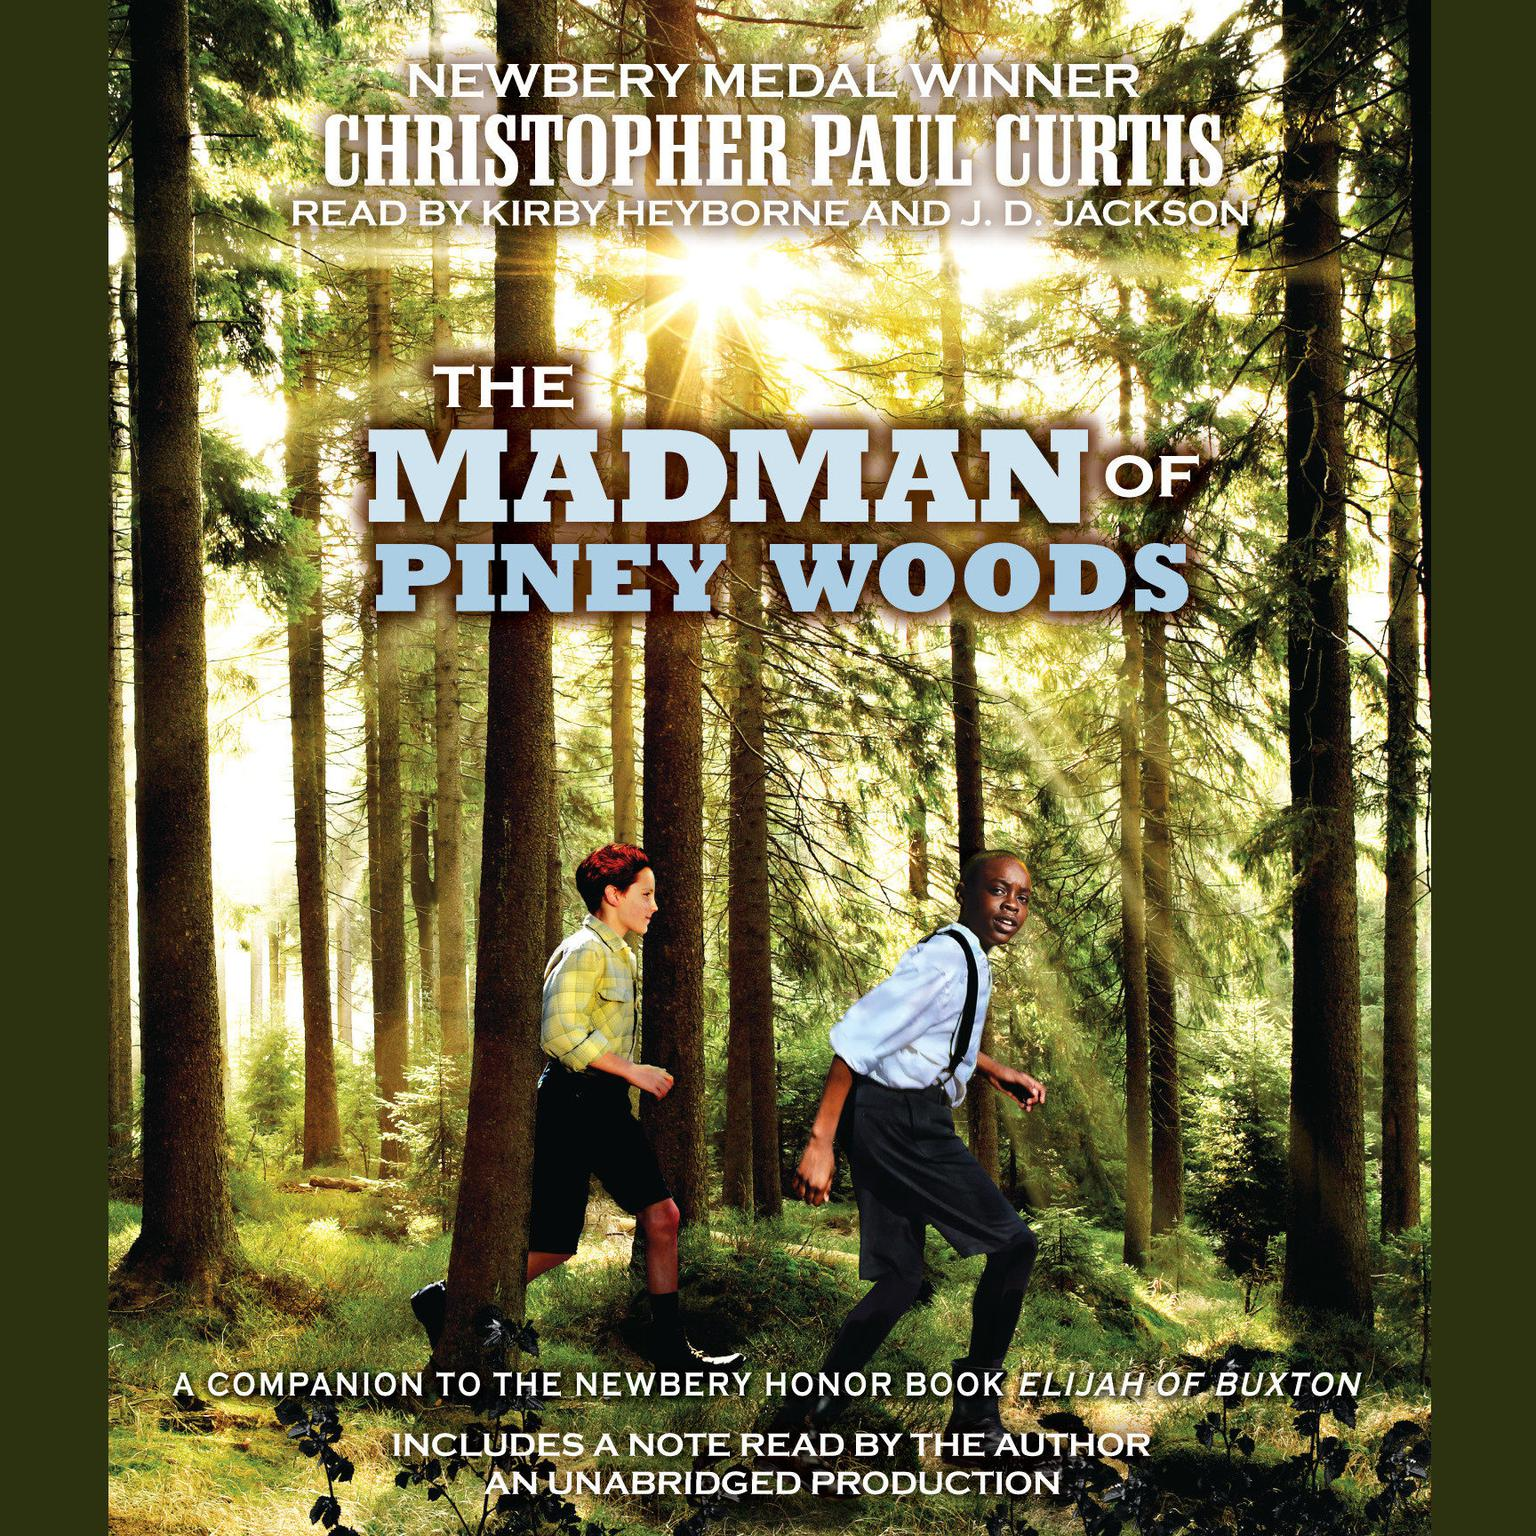 Printable The Madman of Piney Woods Audiobook Cover Art